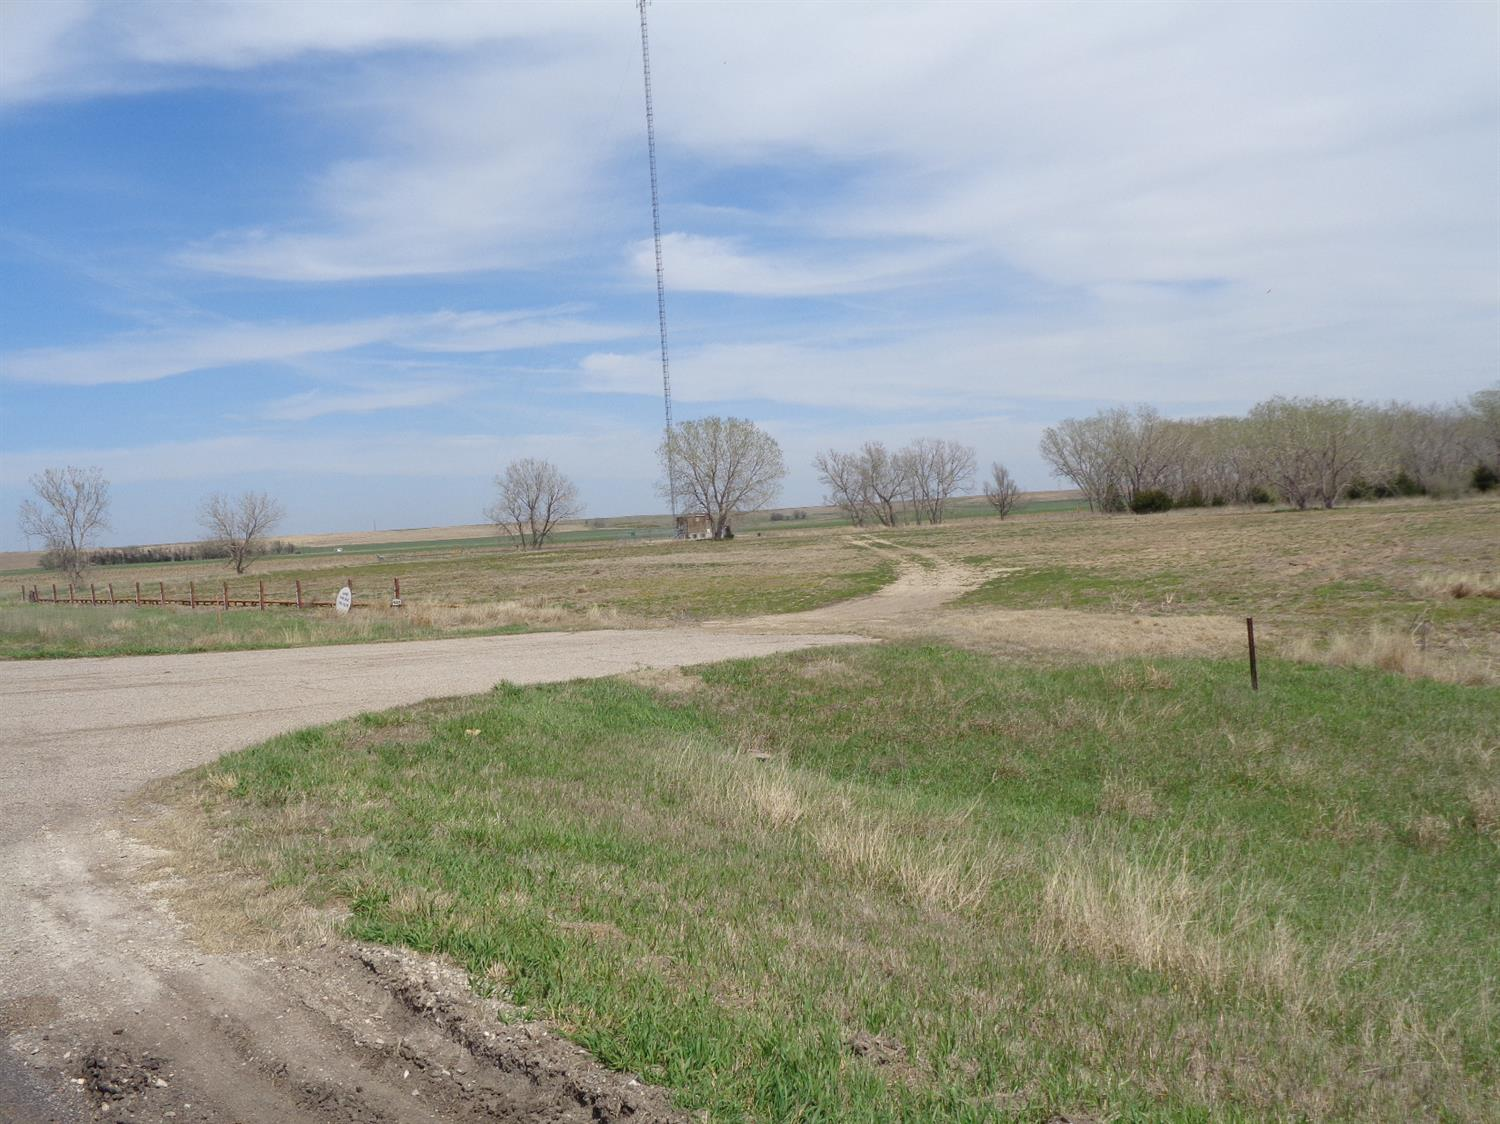 Prime commercial or industrial location on a very busy highway. It has 7 acres that are already developed for immediate use including water well and septic system. Total acreage included is +/-41.5 acres.  Enviromental reports available, 3 driveways with access to K-156 highway and approved by KDOT. Tons of rock have been hauled to this 7 acres for an excellent base to build your building. Dirt work is done on these 7 acres.  Would consider selling ag land separately.  Call Wayne for more information.